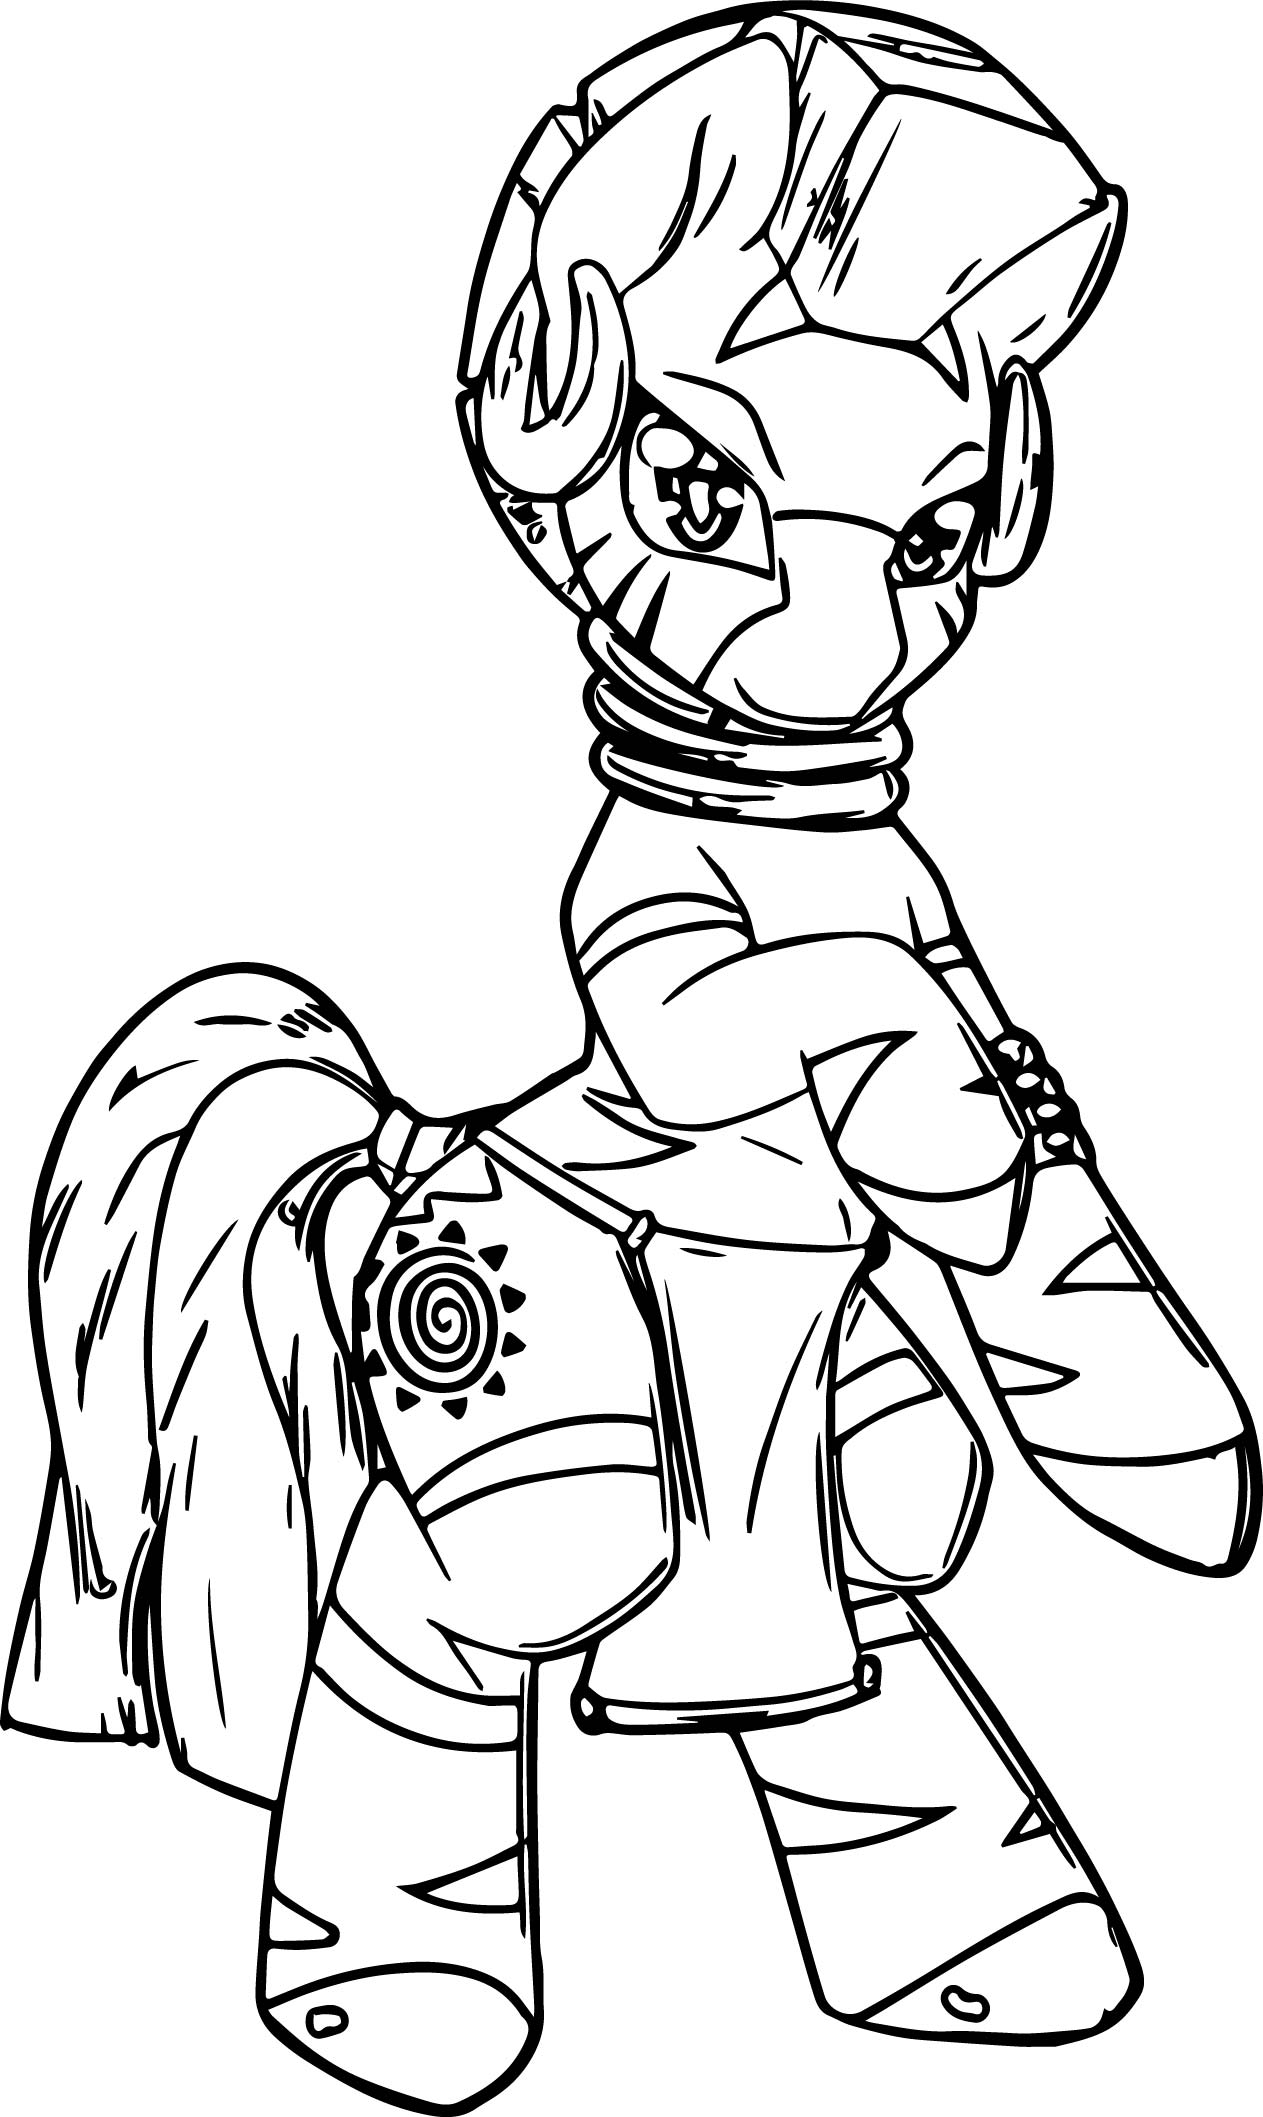 Zecora Dance Coloring Page